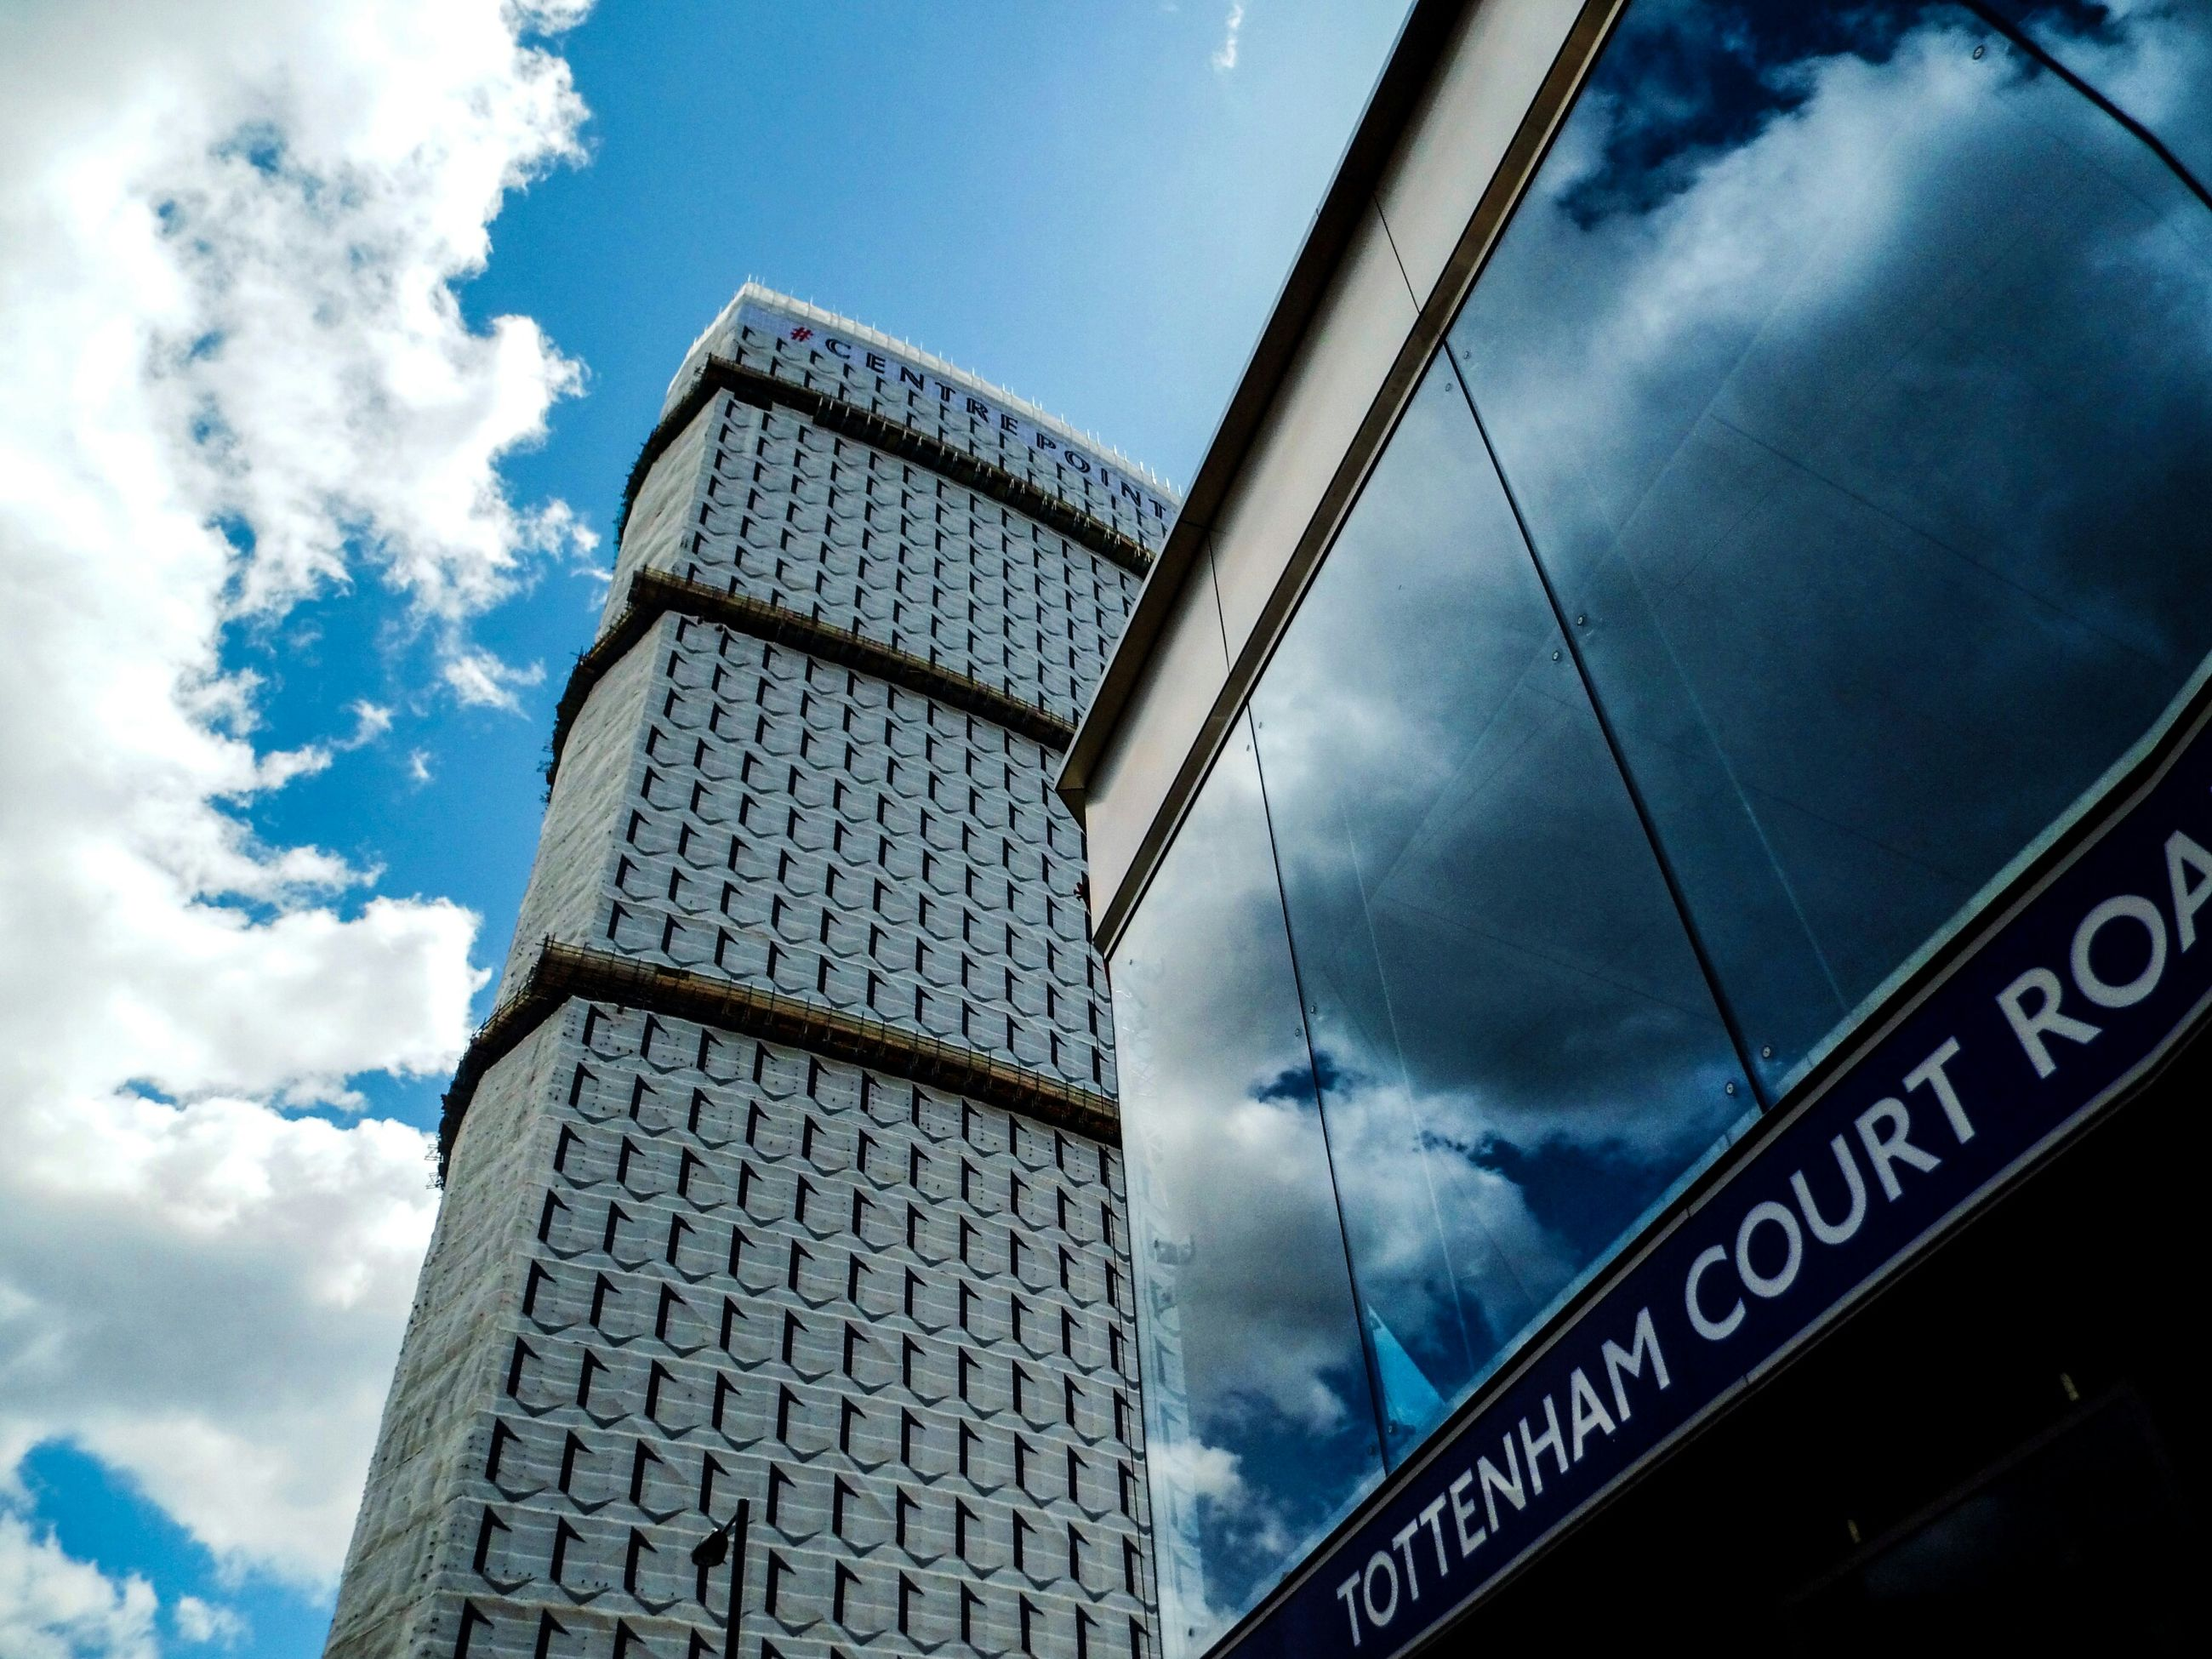 low angle view, sky, architecture, built structure, cloud - sky, building exterior, cloudy, cloud, modern, tower, building, day, city, tall - high, outdoors, blue, no people, architectural feature, office building, reflection